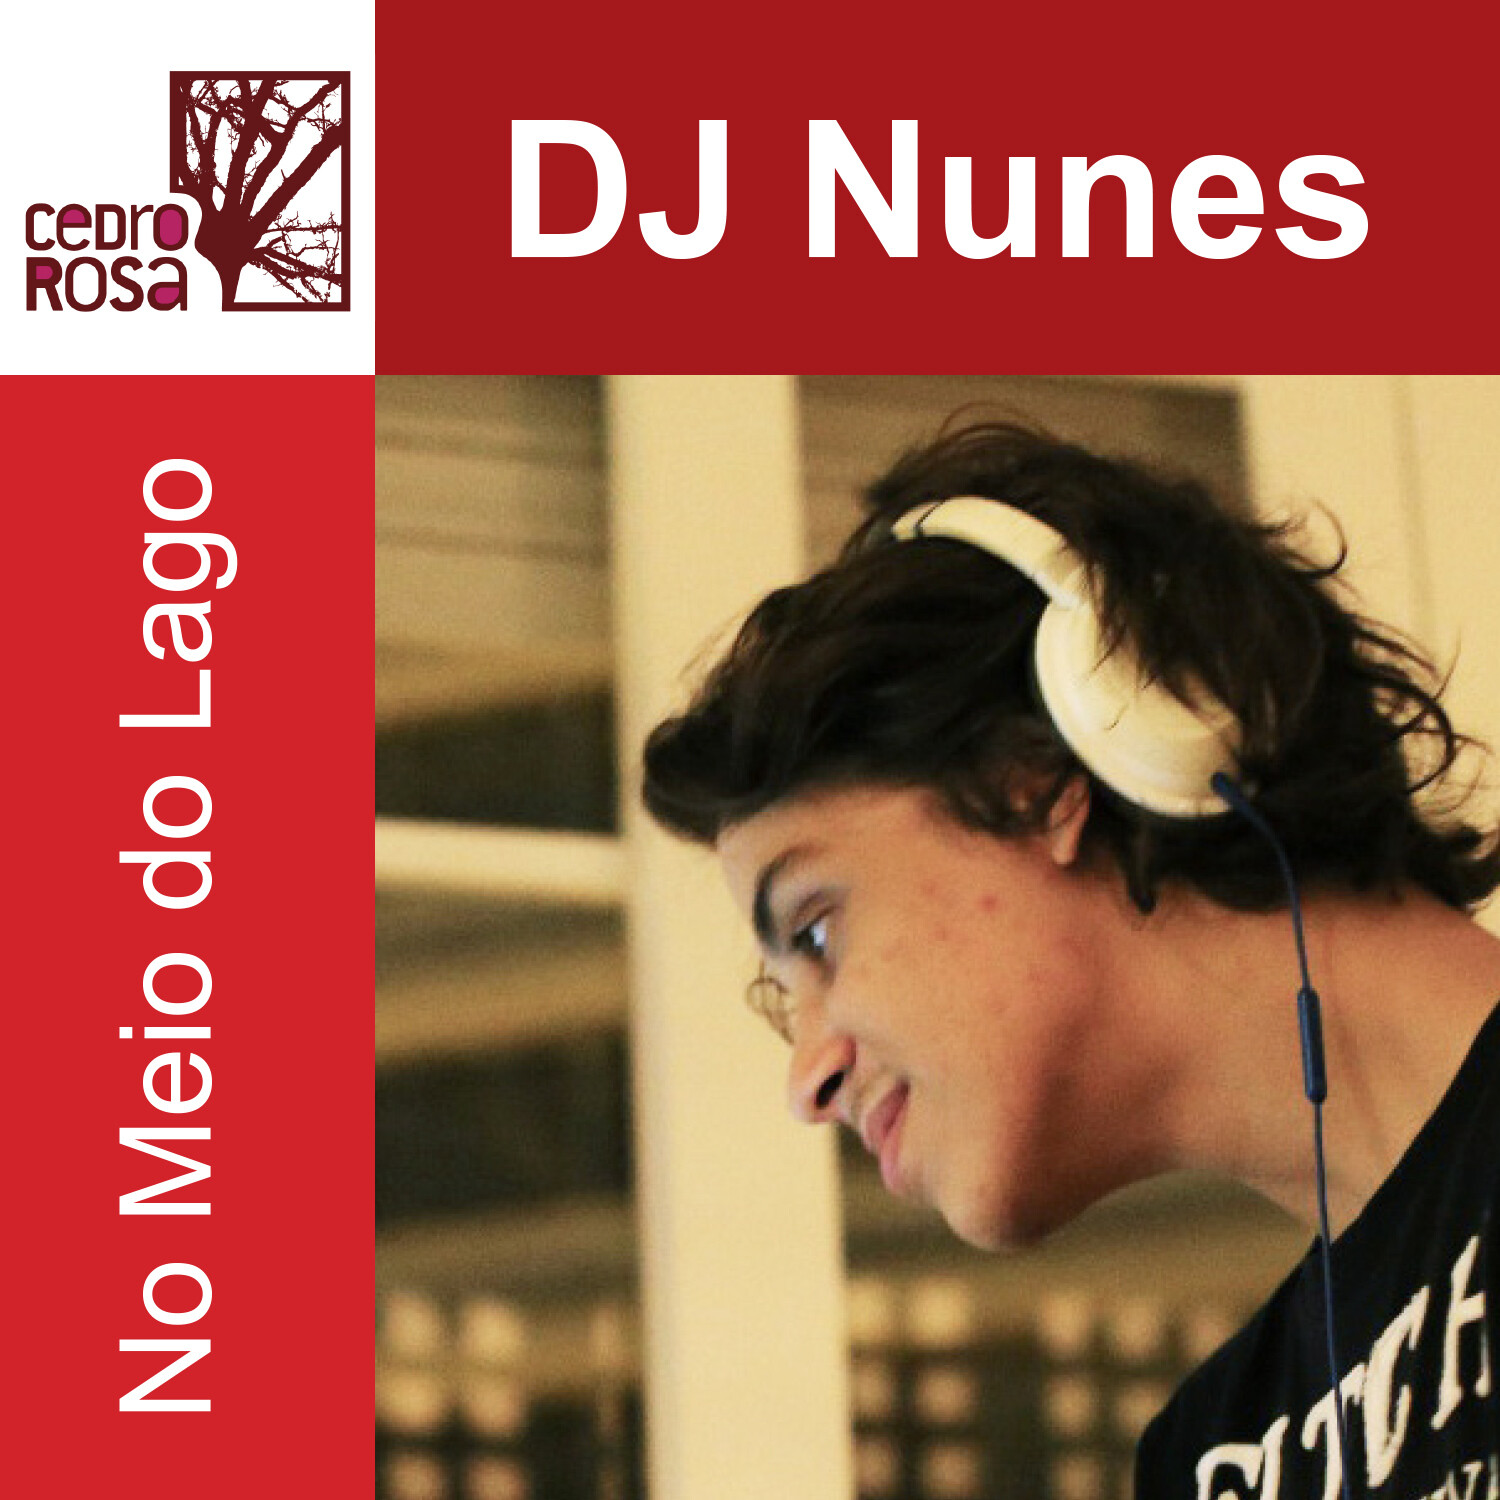 No meio do Lago (DJ Nunes, by Cedro Rosa) - Licenciamento para uso na internet, incluindo midias sociais e publicidade  - Licensing for internet, including social media and advertising